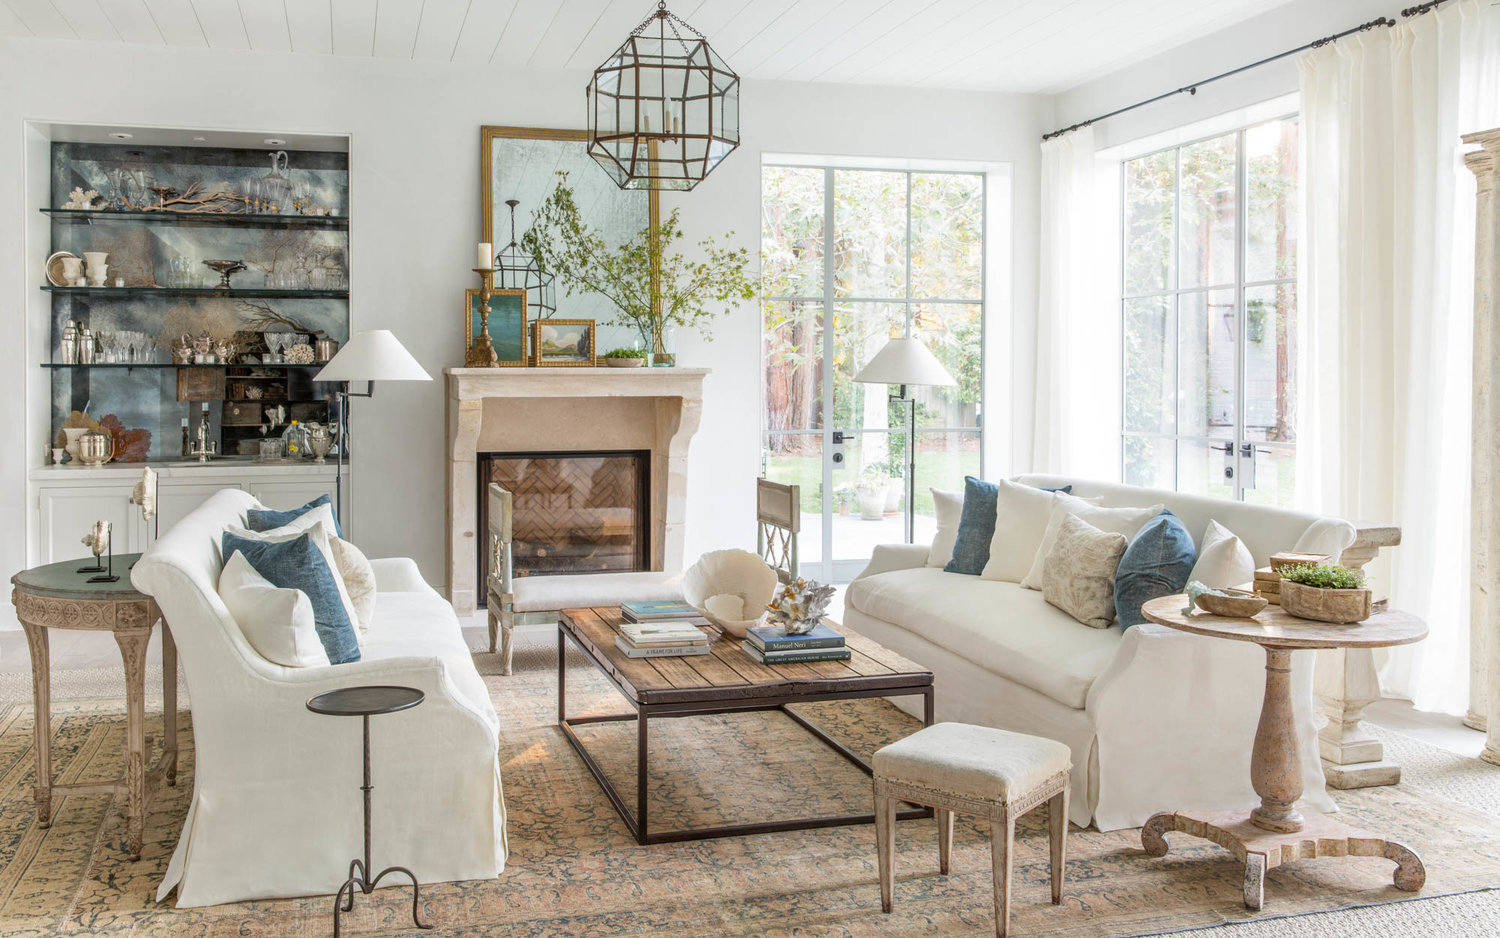 High Quality Decor Inspiration: An Inspiring Modern Farmhouse Living Room